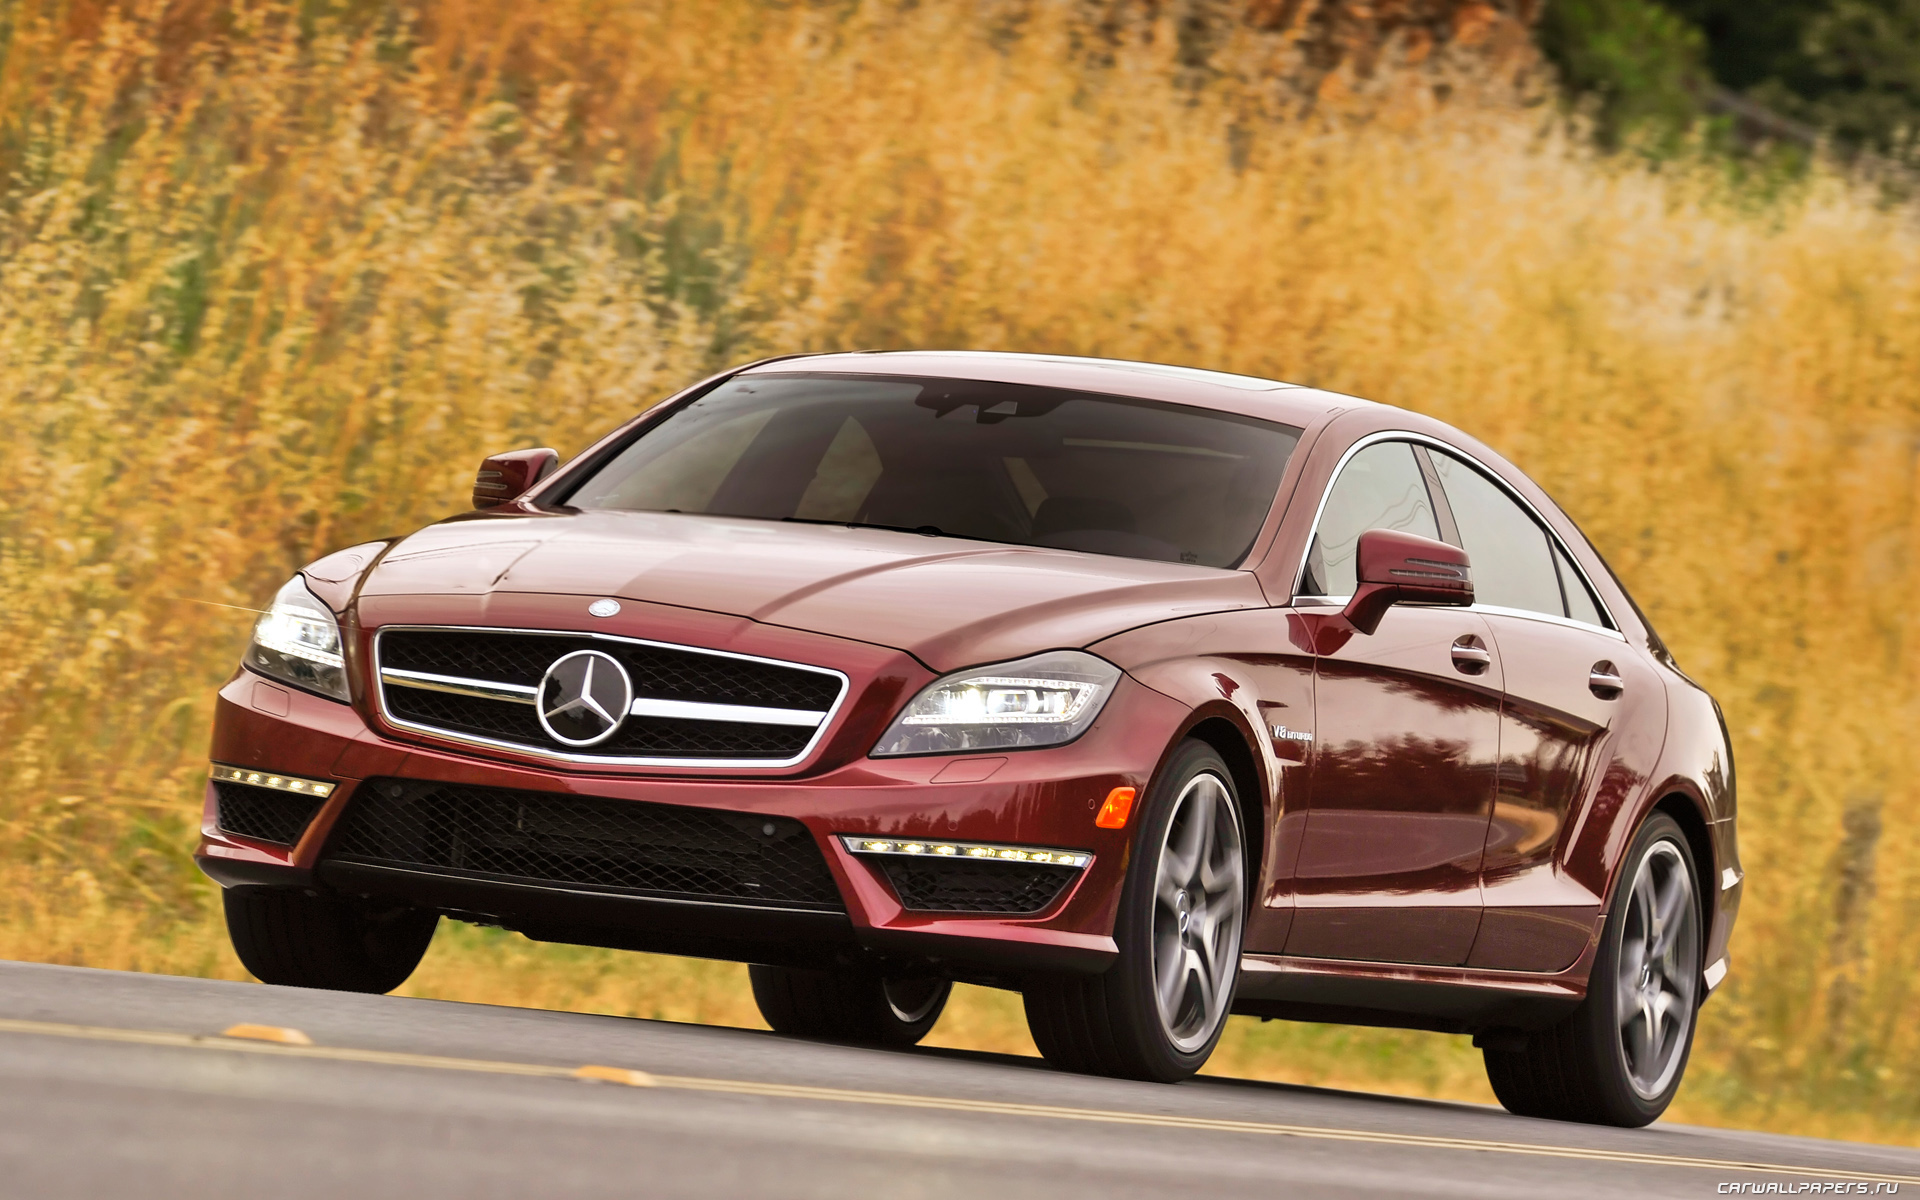 mercedez benz All the mercedes benz parts and accessories online at auto parts warehouse get up to 70% off on retail prices free shipping when you order over $50.